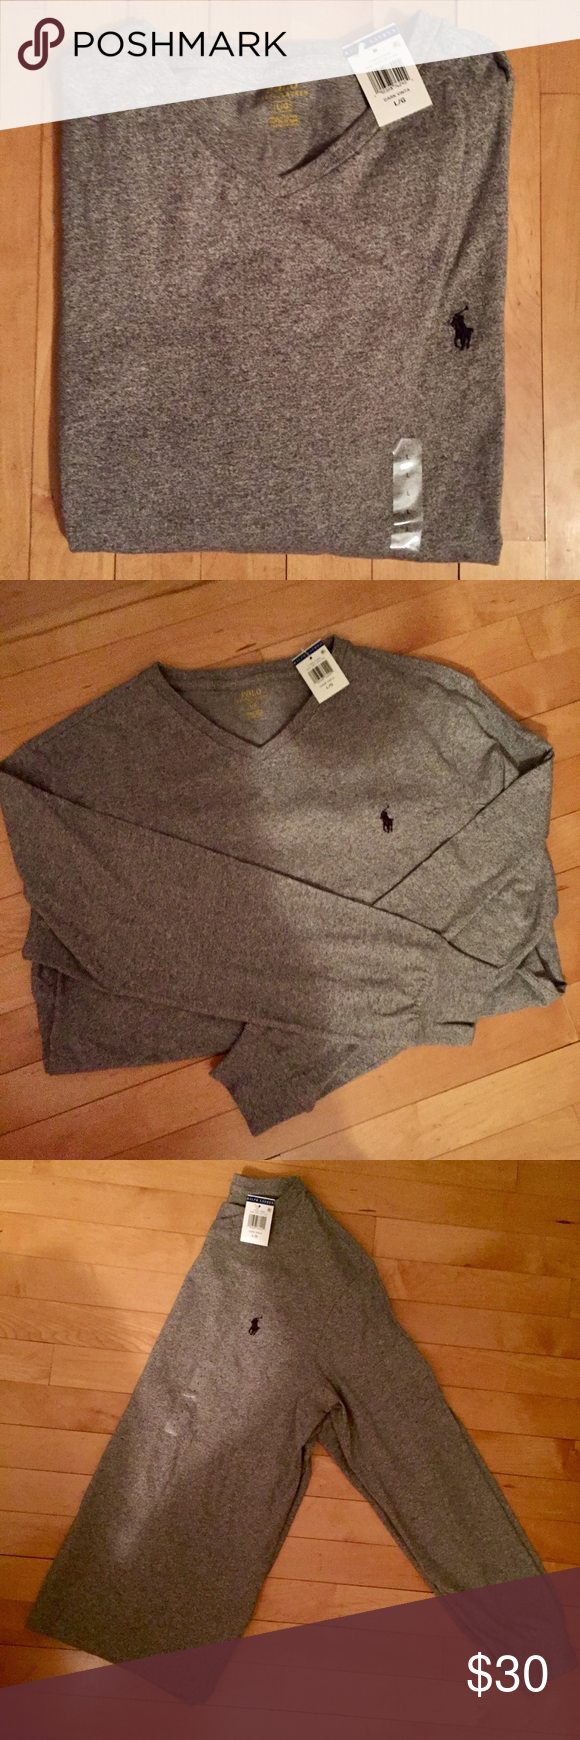 Long-Sleeve V-Neck Polo Long-Sleeve V-Neck   Men's Ralph Lauren Polo. Size Large.  Long Sleeve V-Neck. 100% cotton. Heathered gray, navy blue symbol.   Tags still attached, brand new! Polo by Ralph Lauren Shirts Tees - Long Sleeve